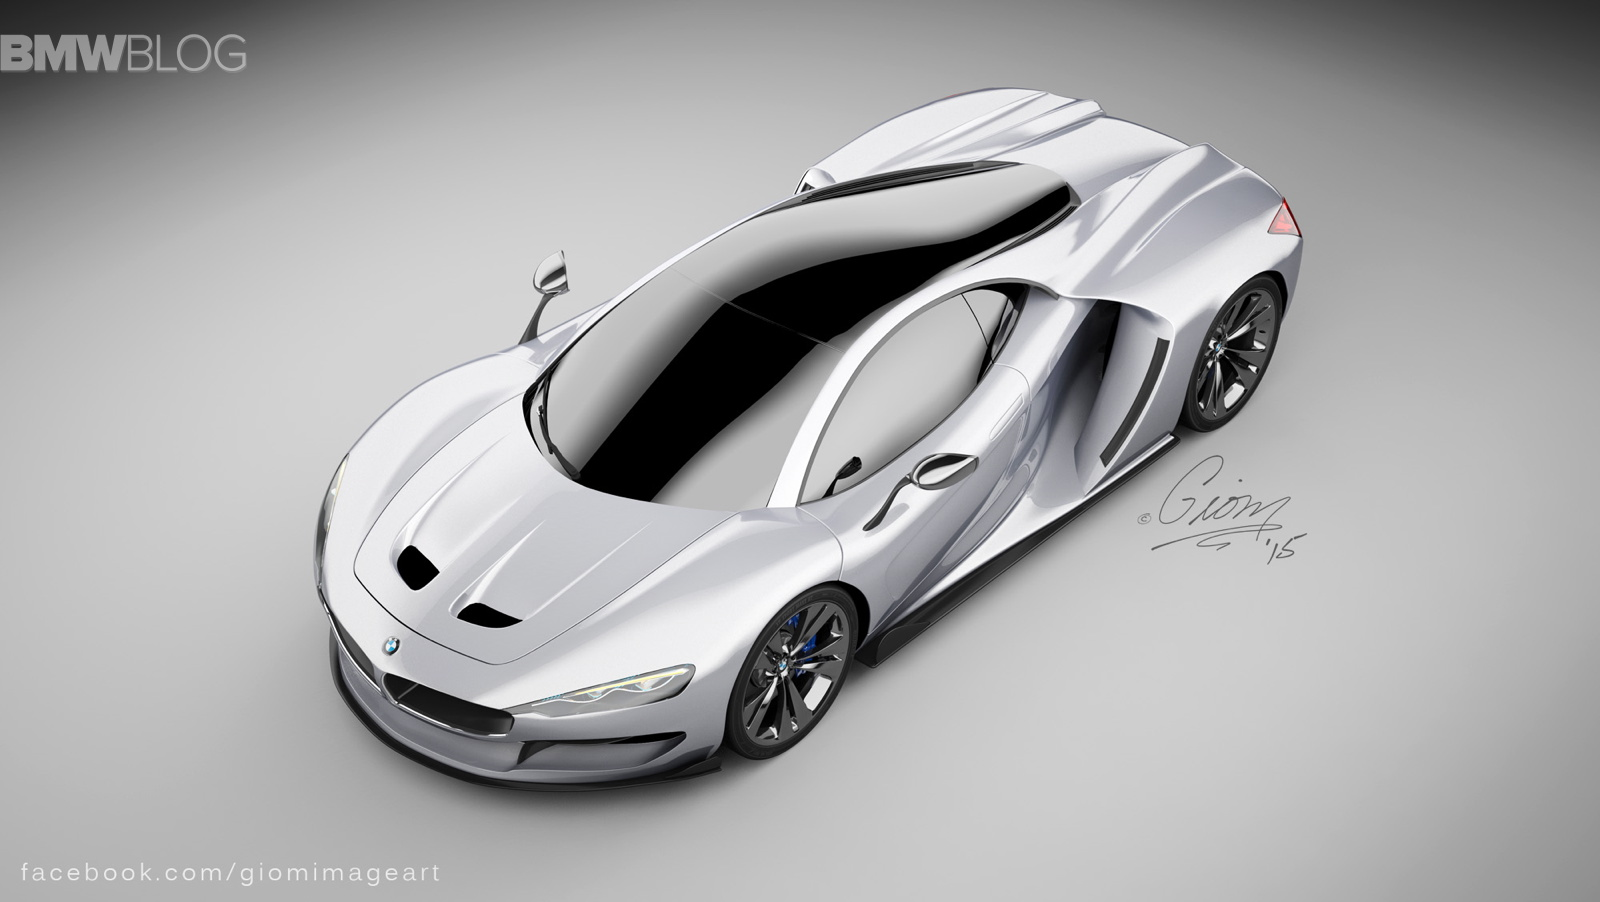 Phantom Car Wallpaper Rendering Bmw Hypercar To Compete With Mclaren P1 And